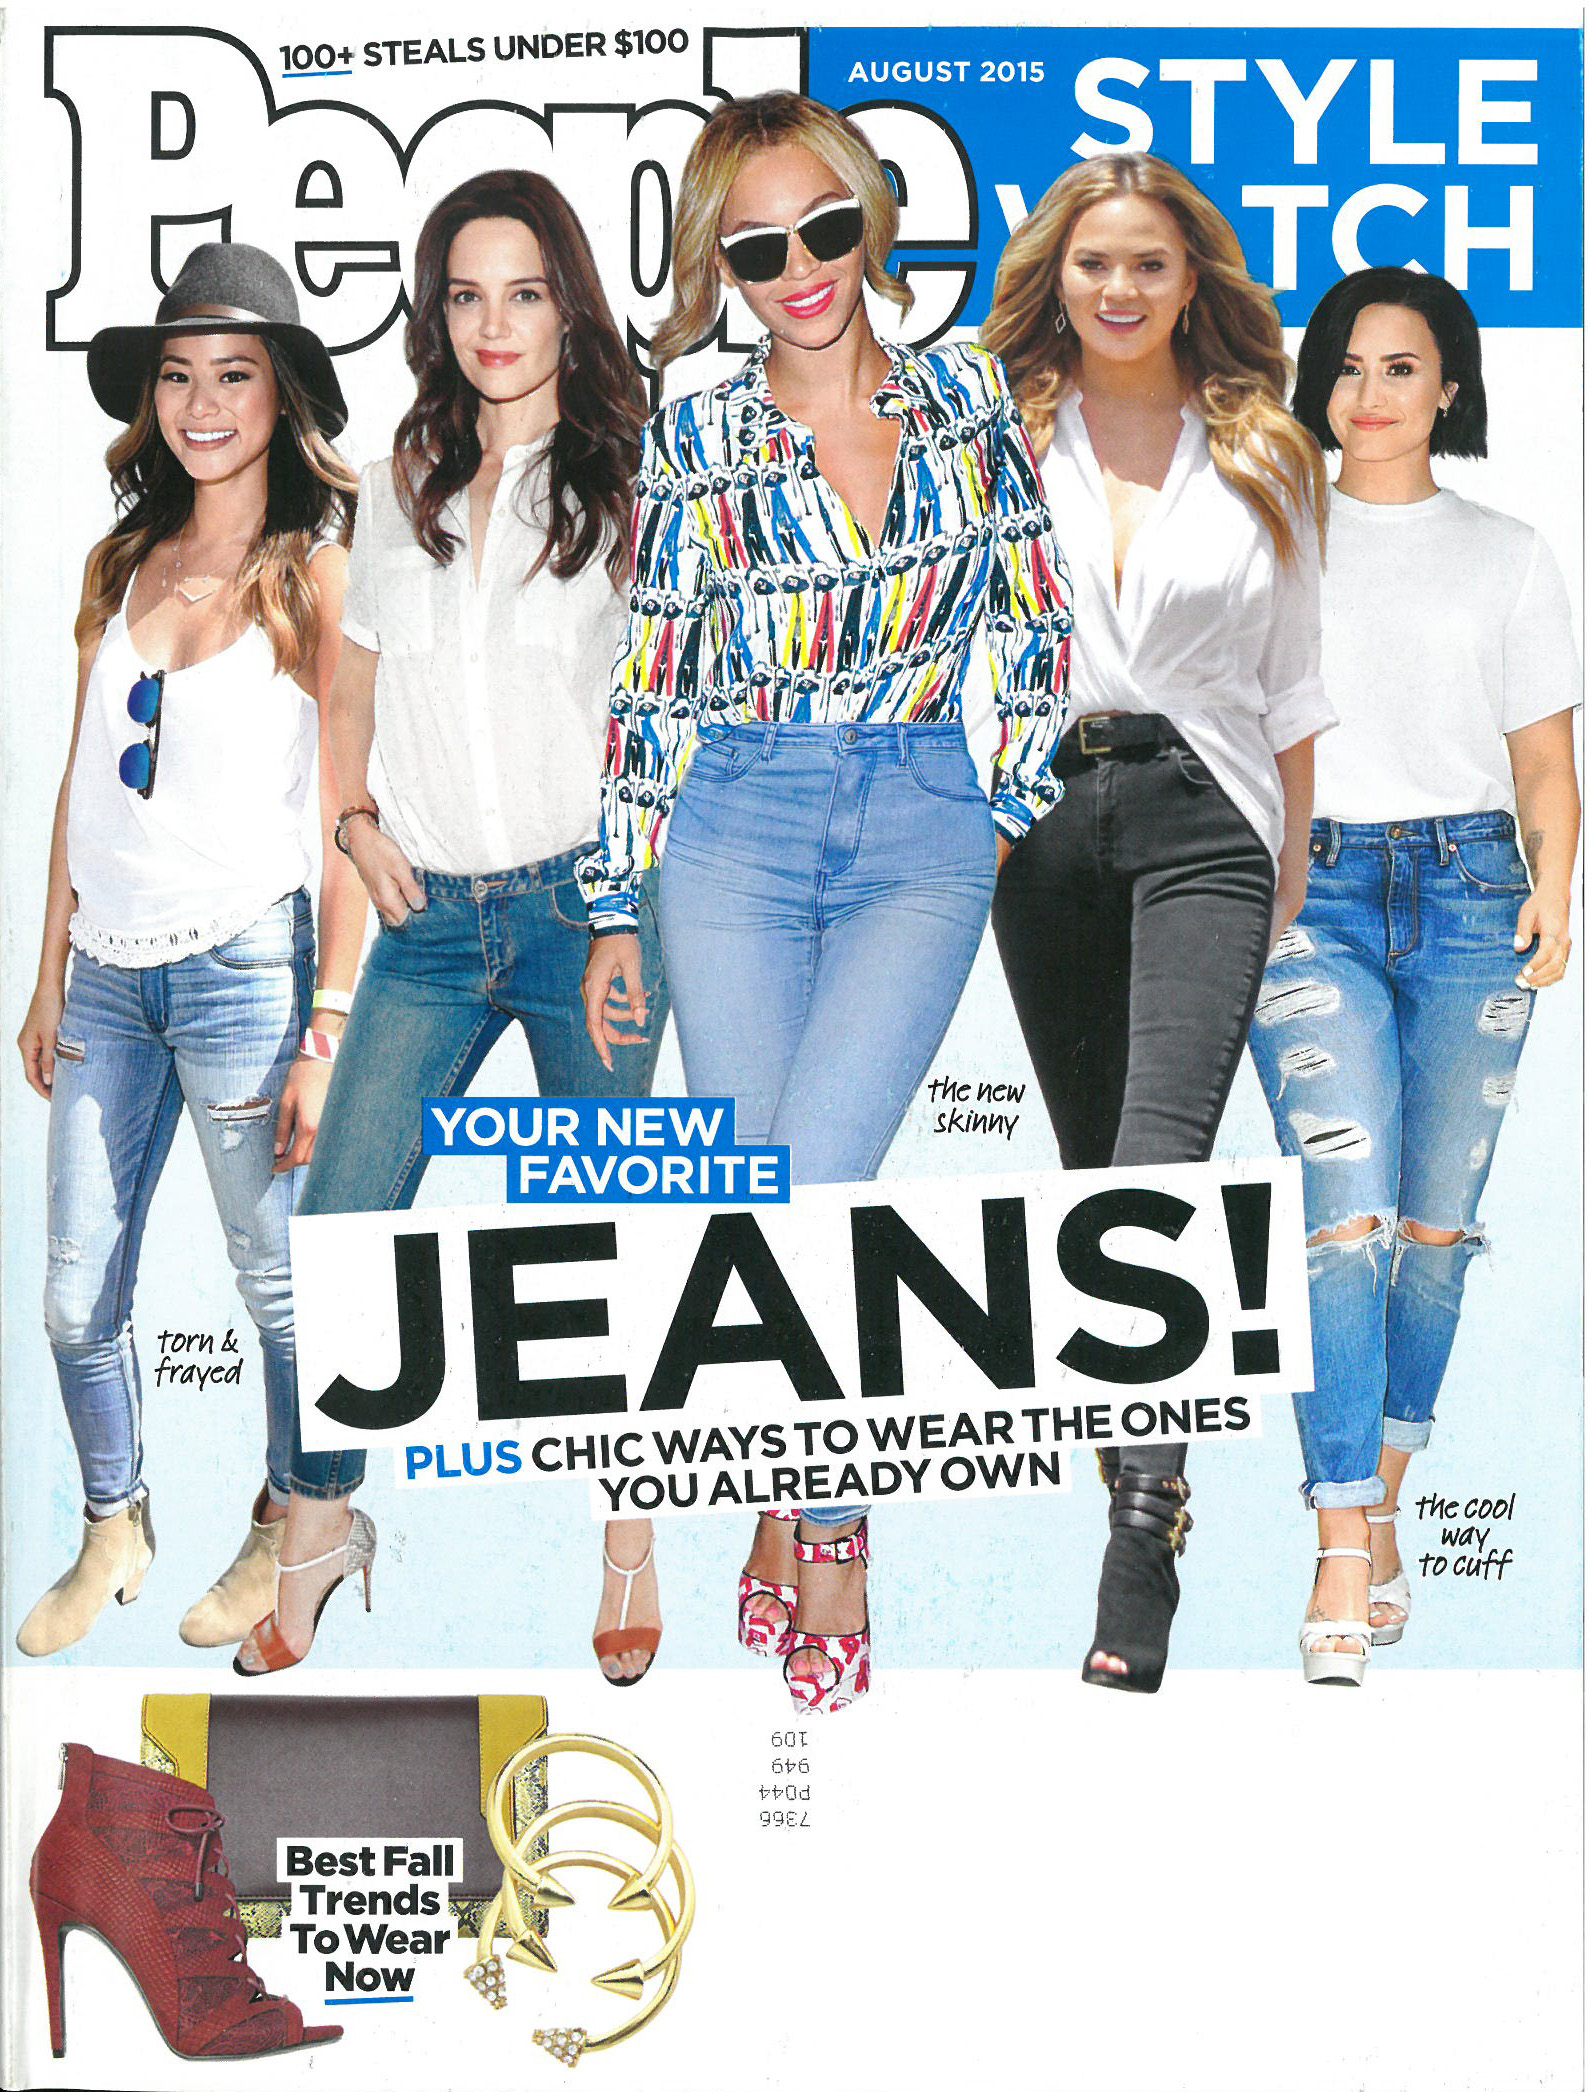 AUGUST 2015 – PEOPLE STYLE WATCH (DATE)